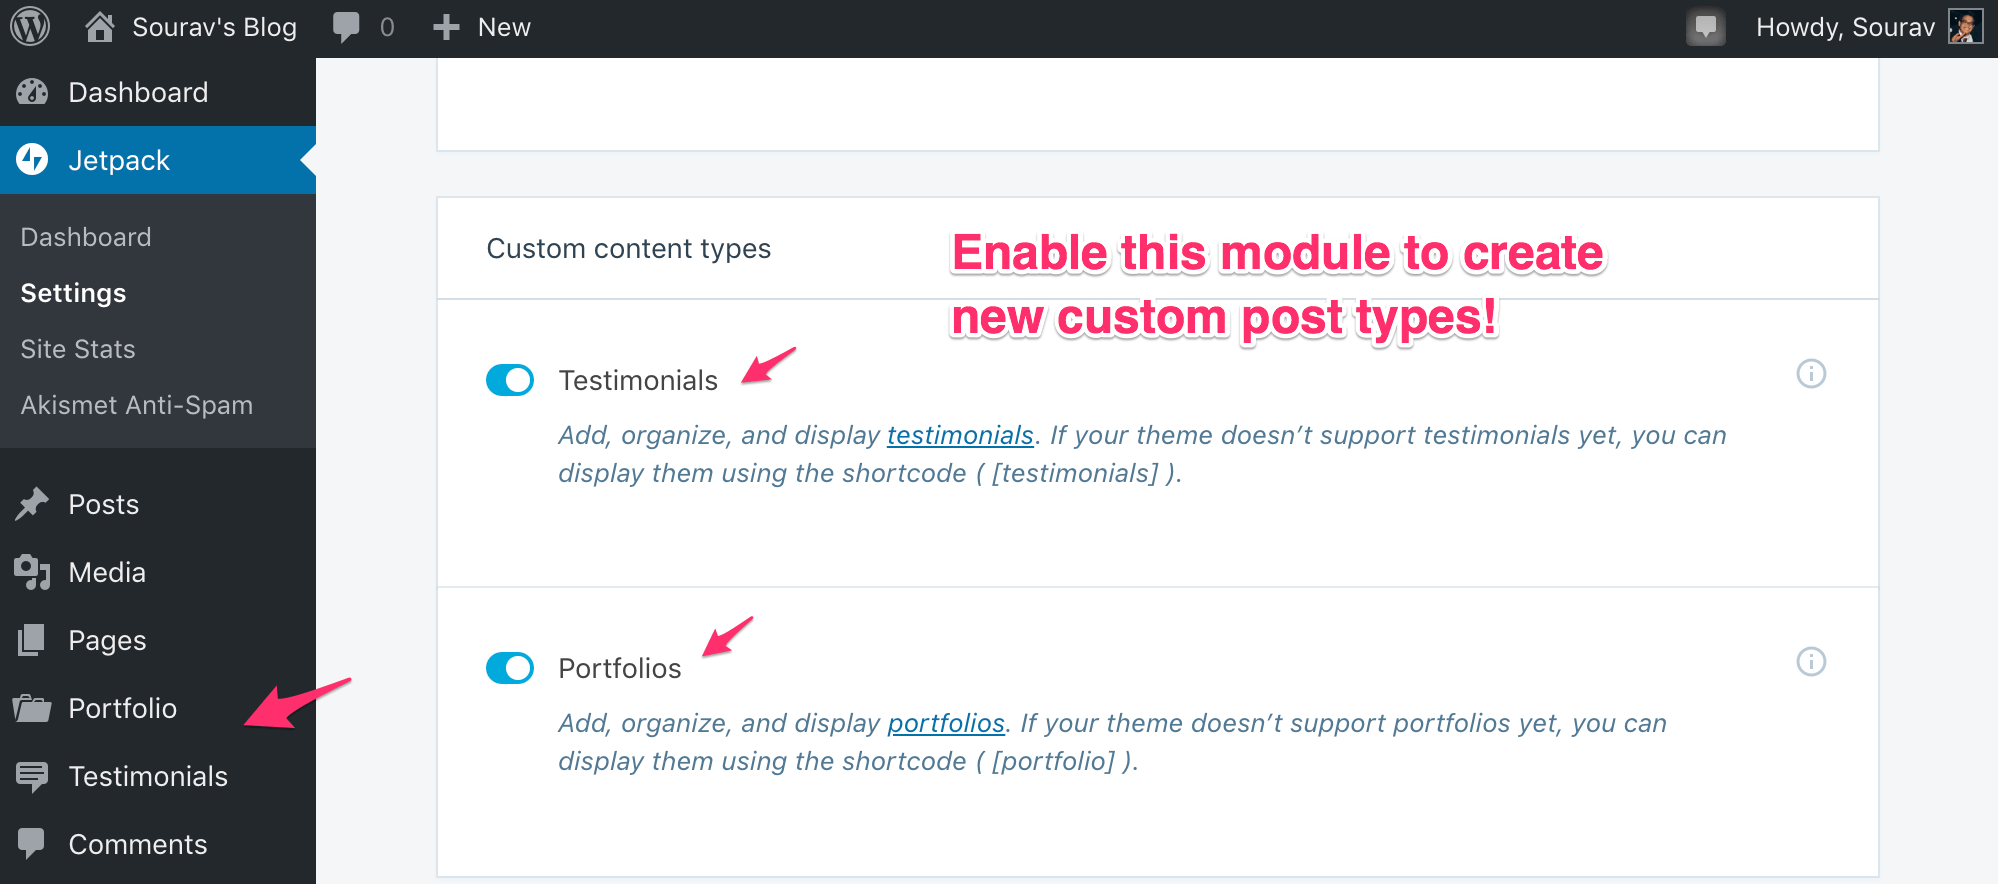 How to Enable Custom Post Type Module in Jetpack